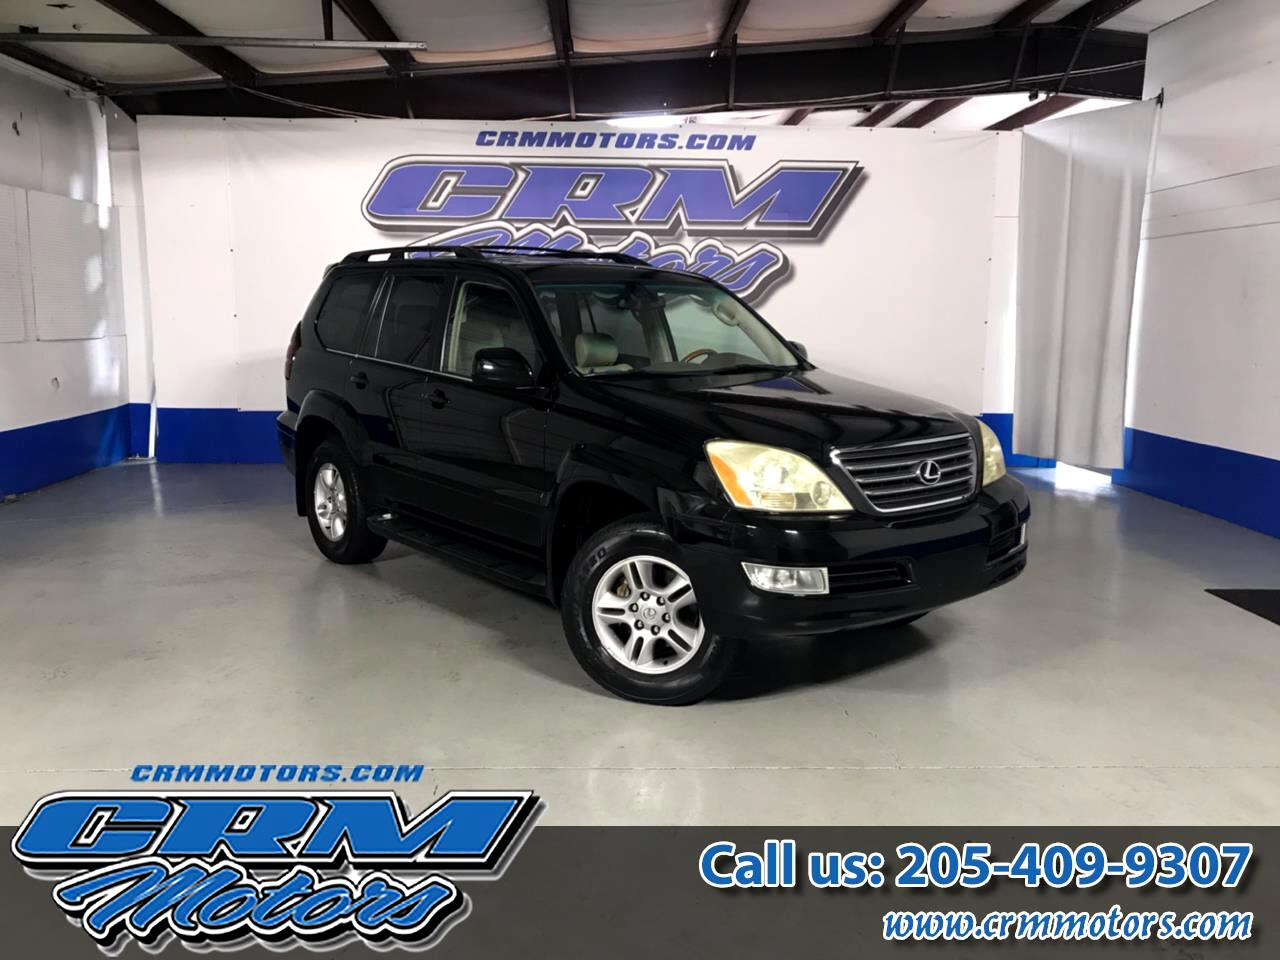 2003 Lexus GX 470 AWD LUXURY, SO CLEAN! NO ACCIDENTS!